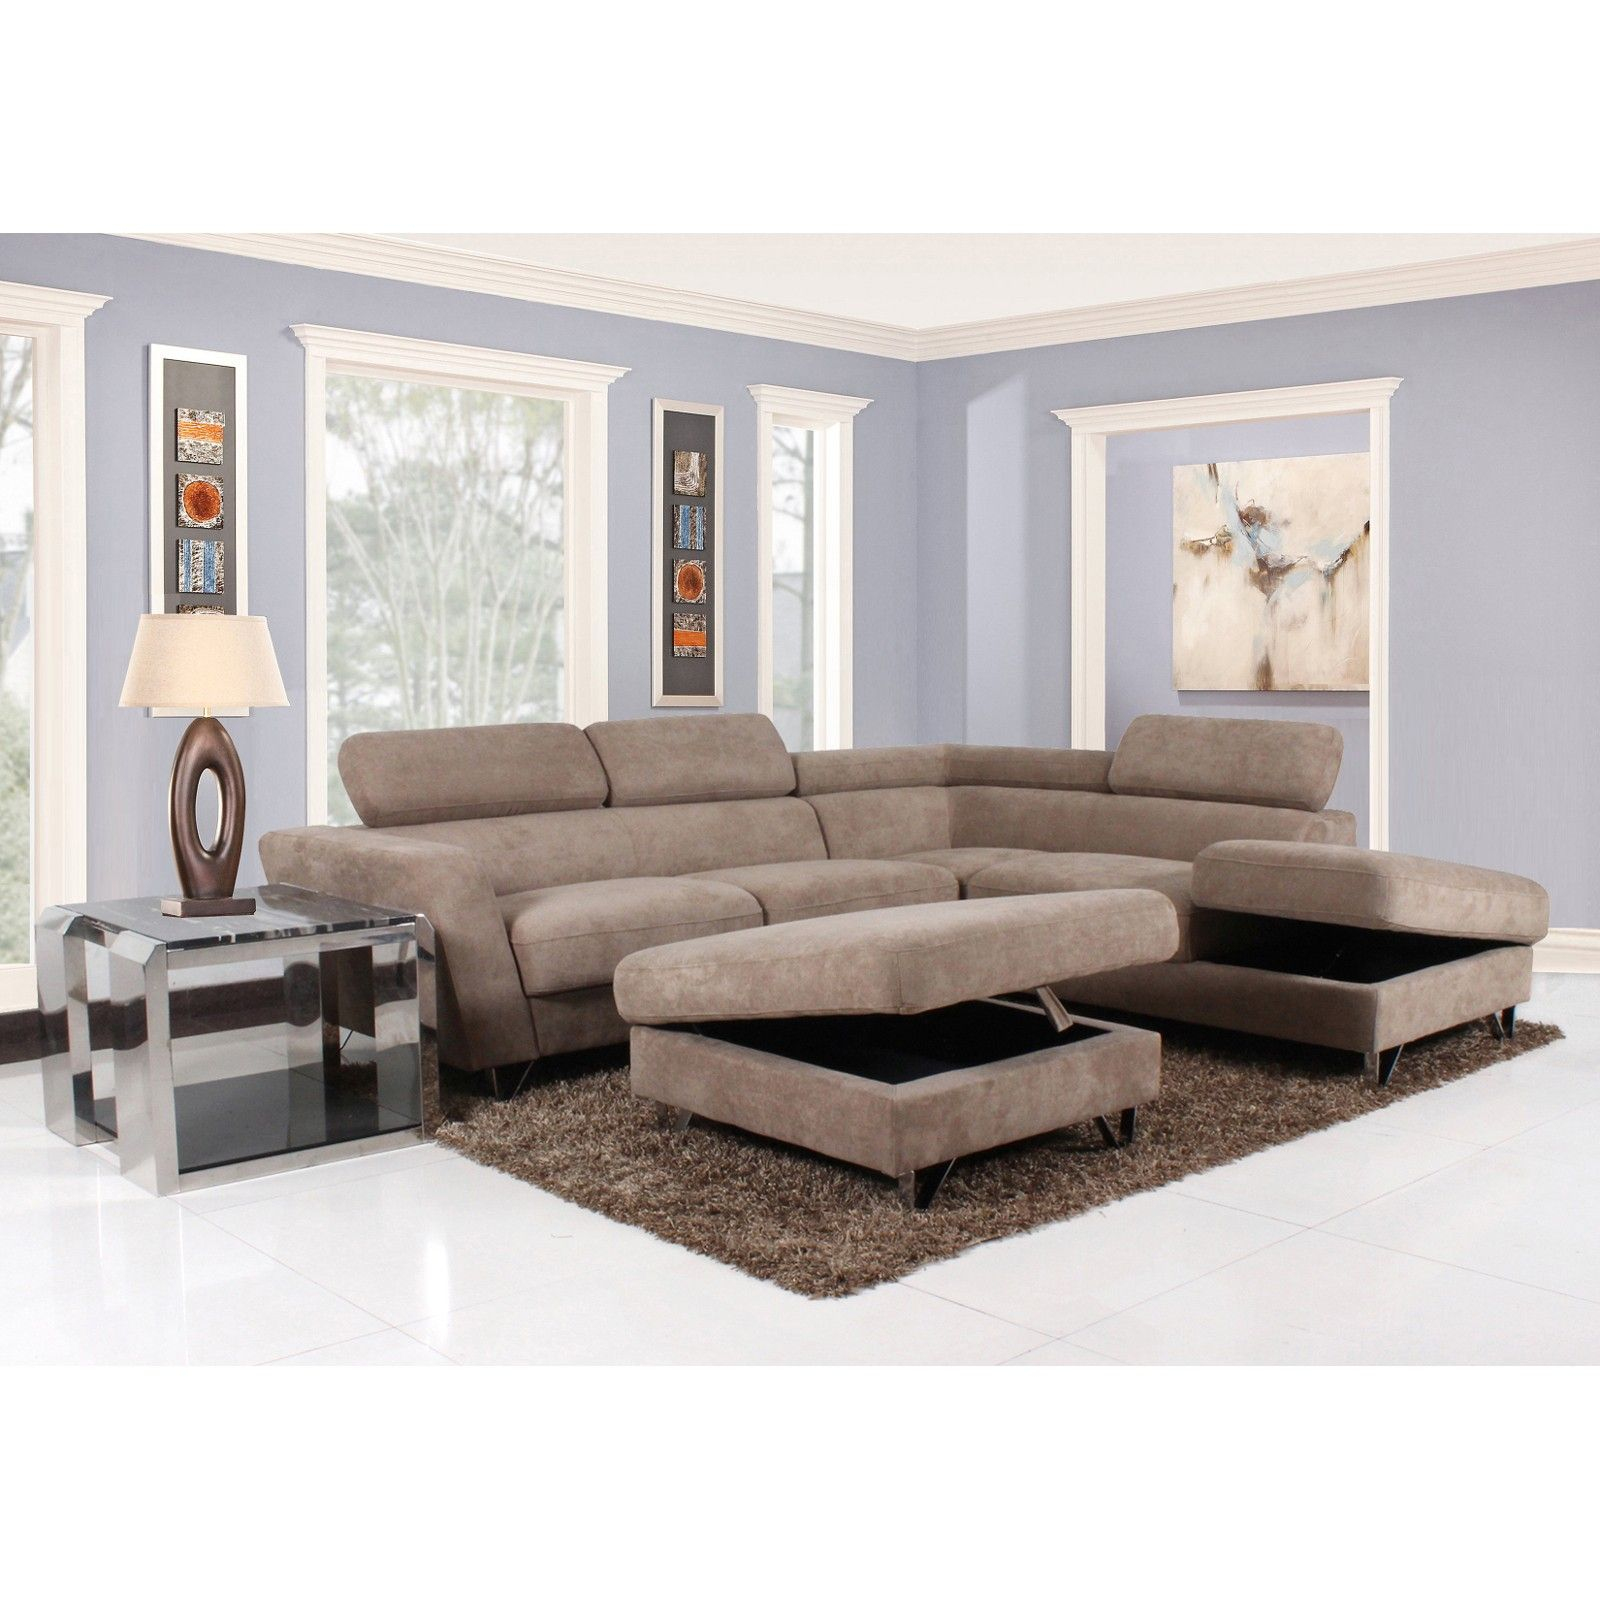 Uptown Living Room Sectional Group Sfu9082 Conn 39 S Furniture Pinterest Living Room